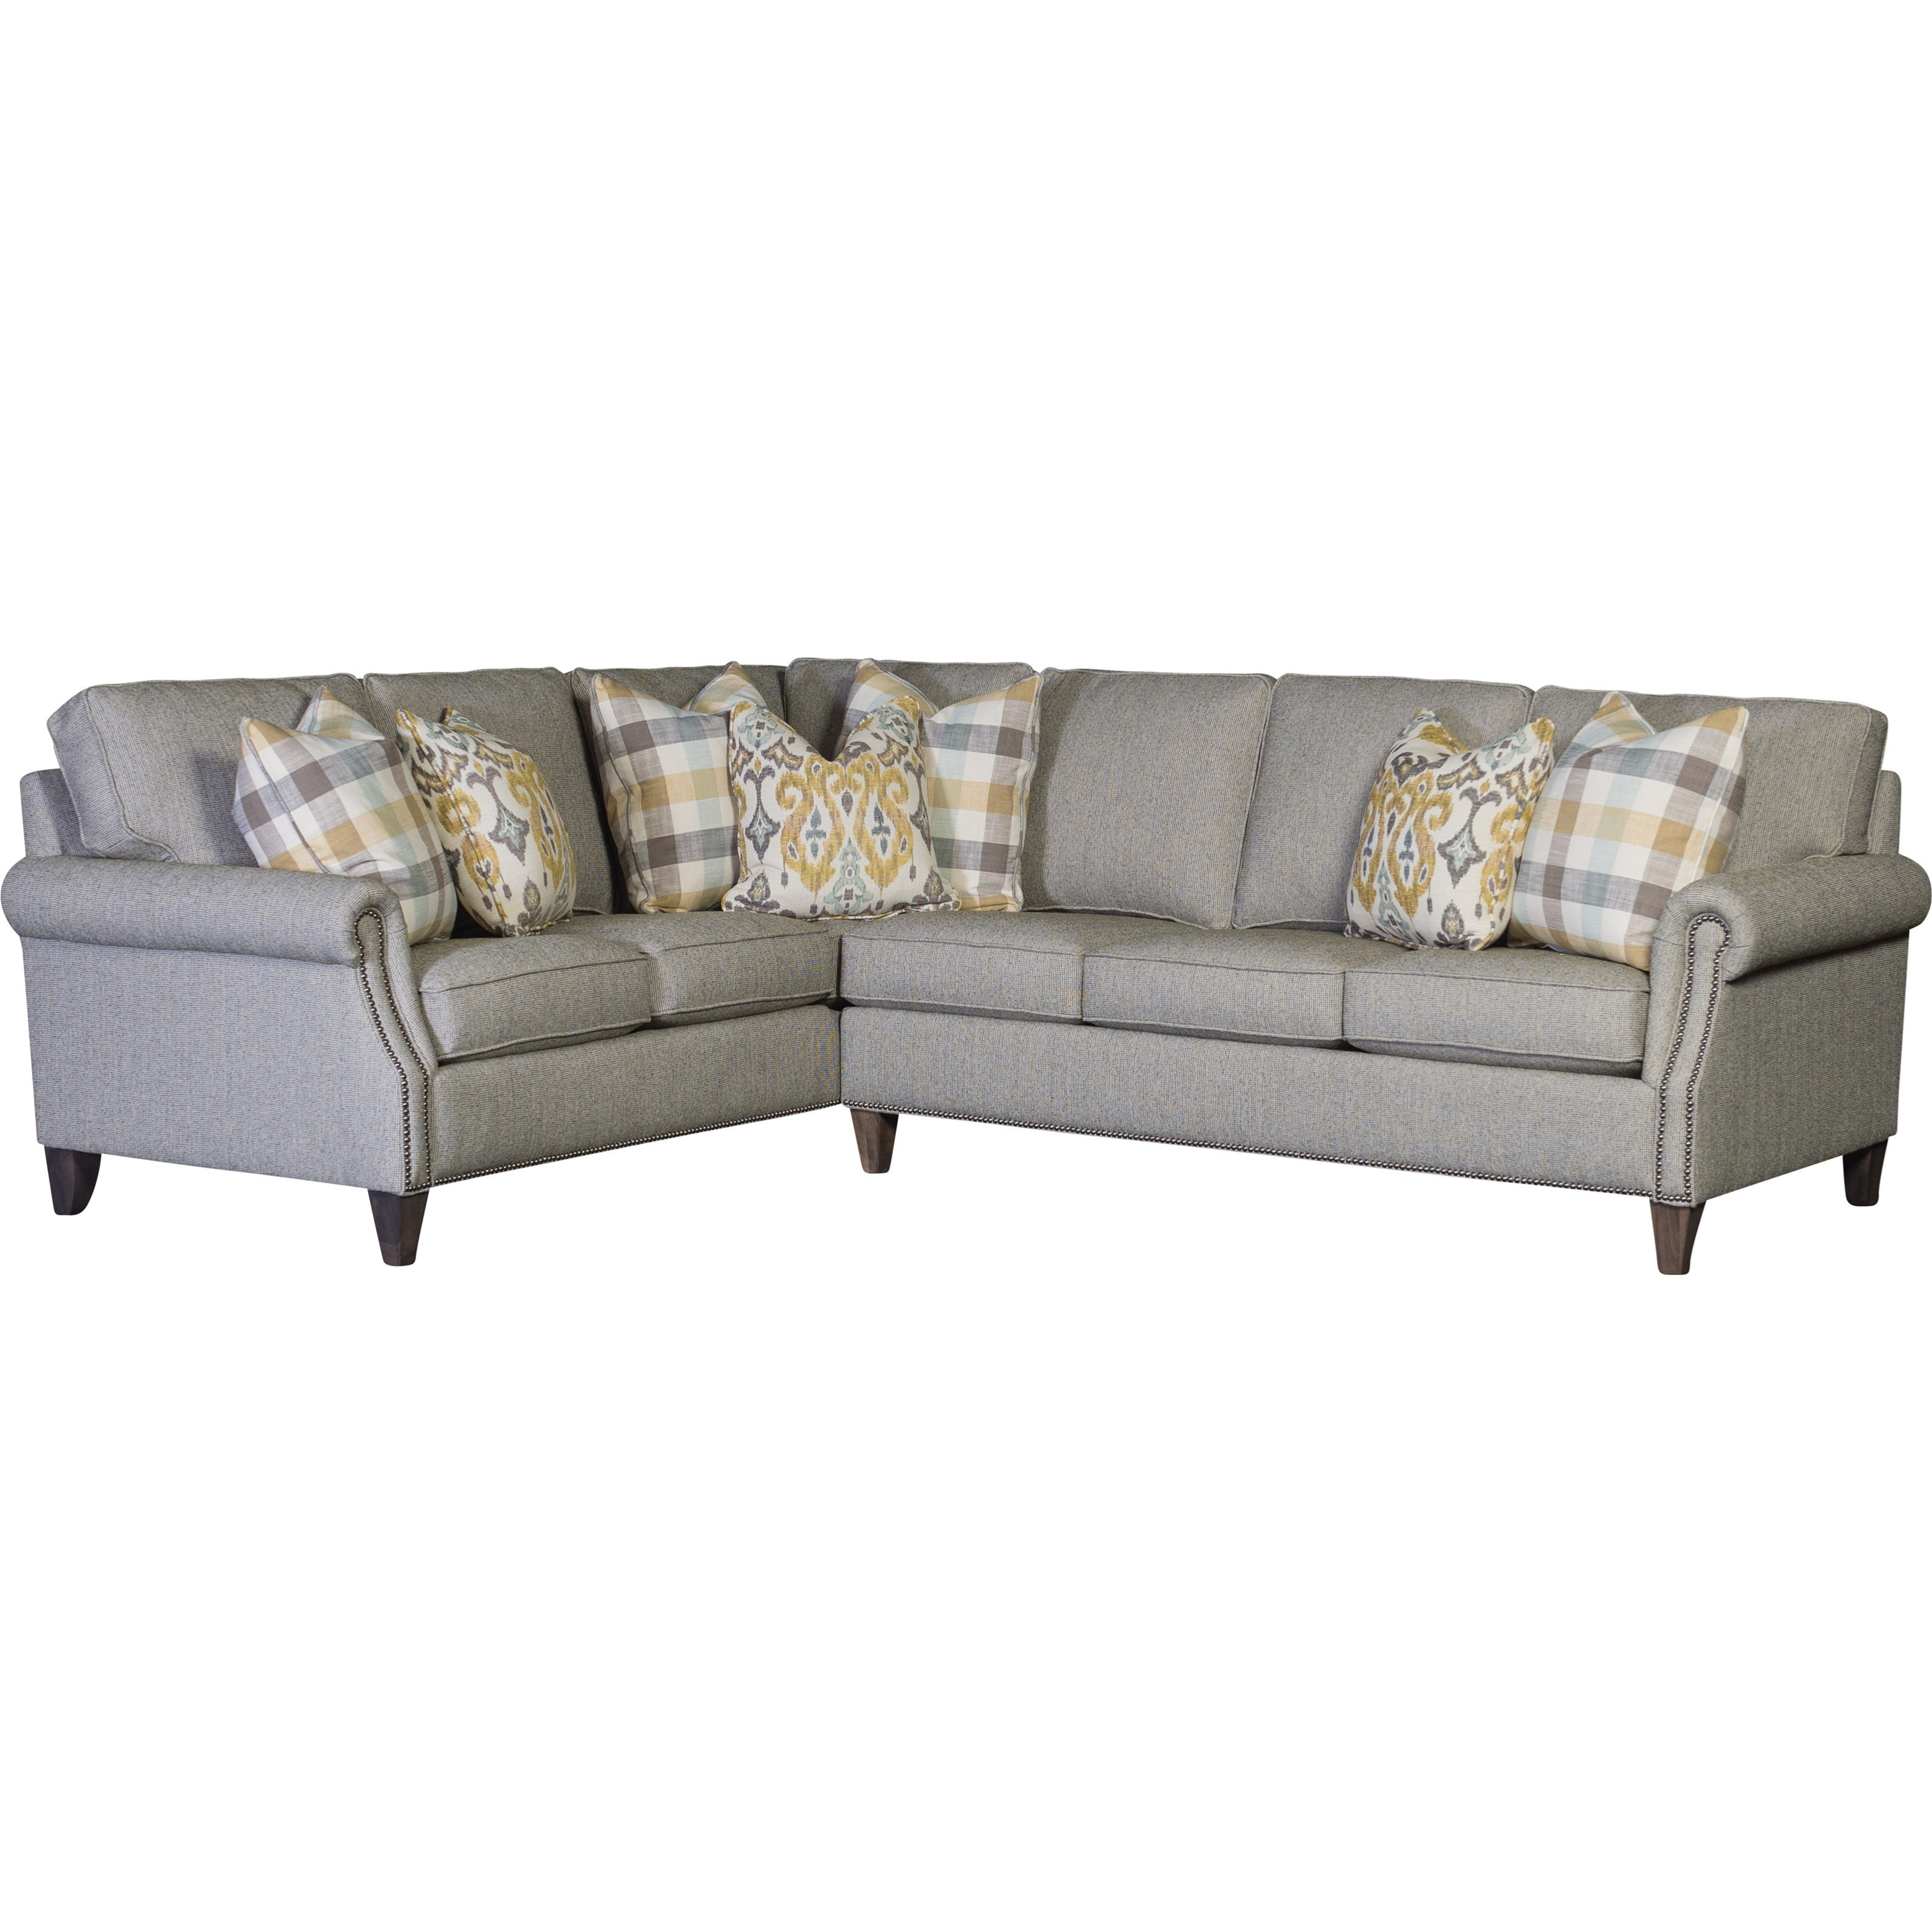 3311 5 Seat Sectional by Mayo at Story & Lee Furniture